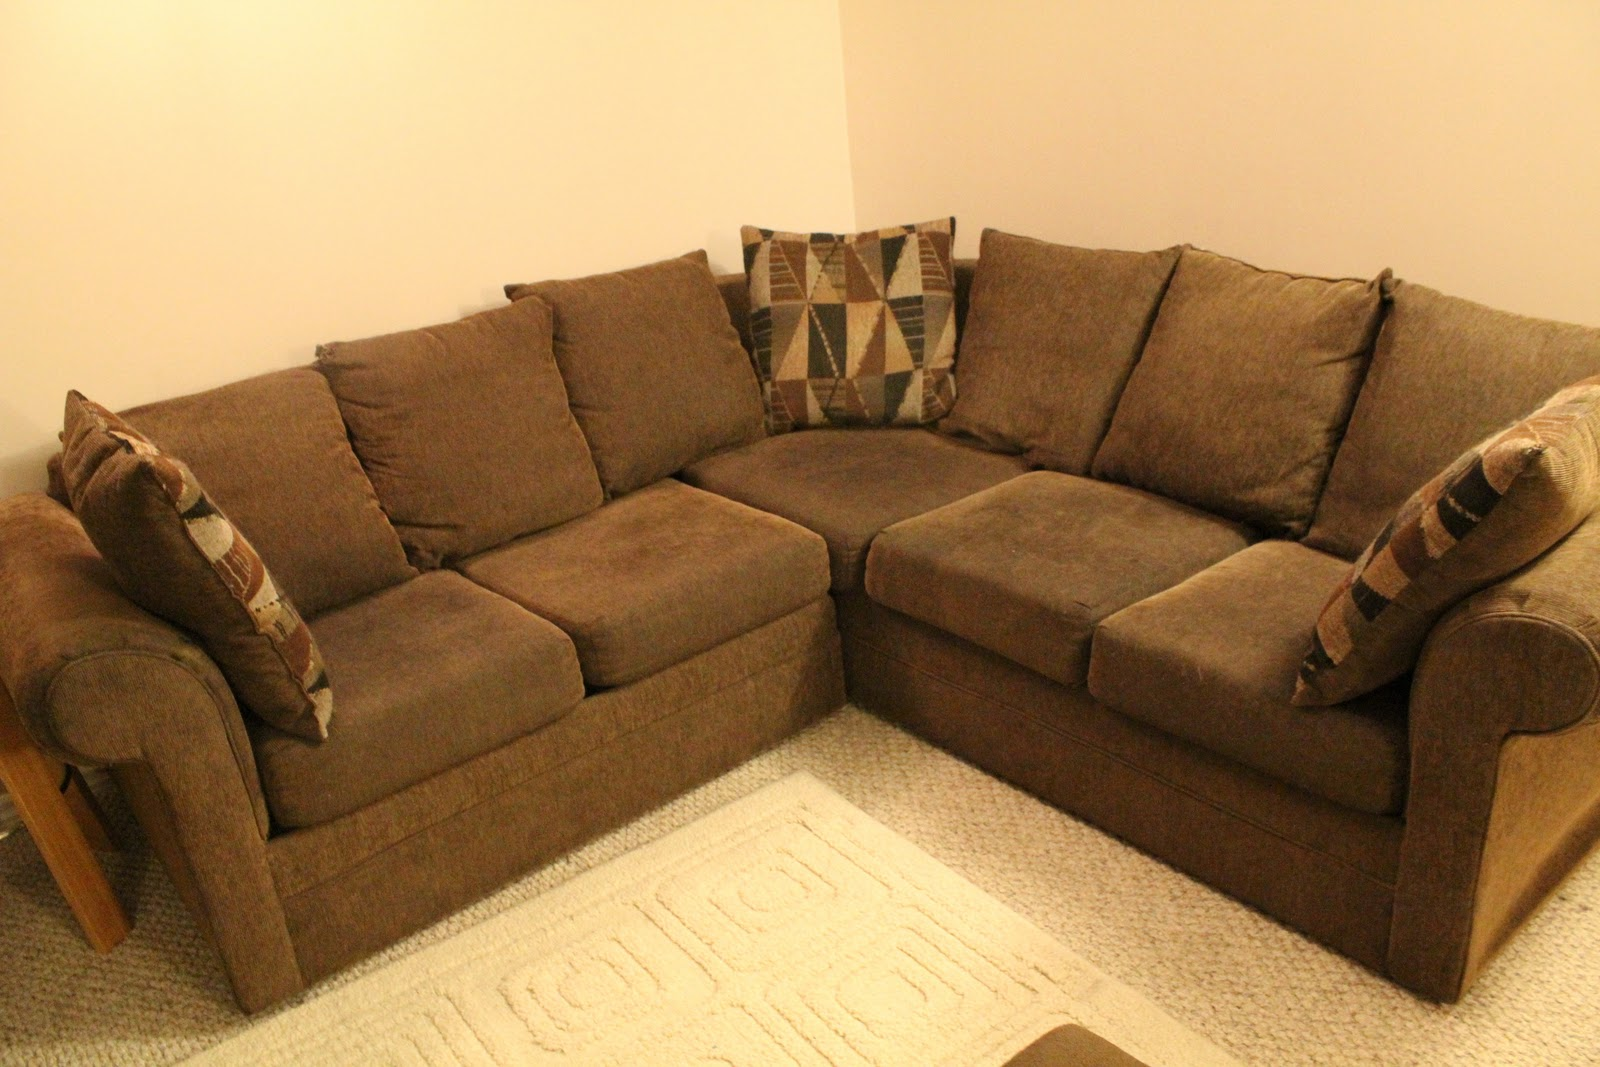 40acre Couch